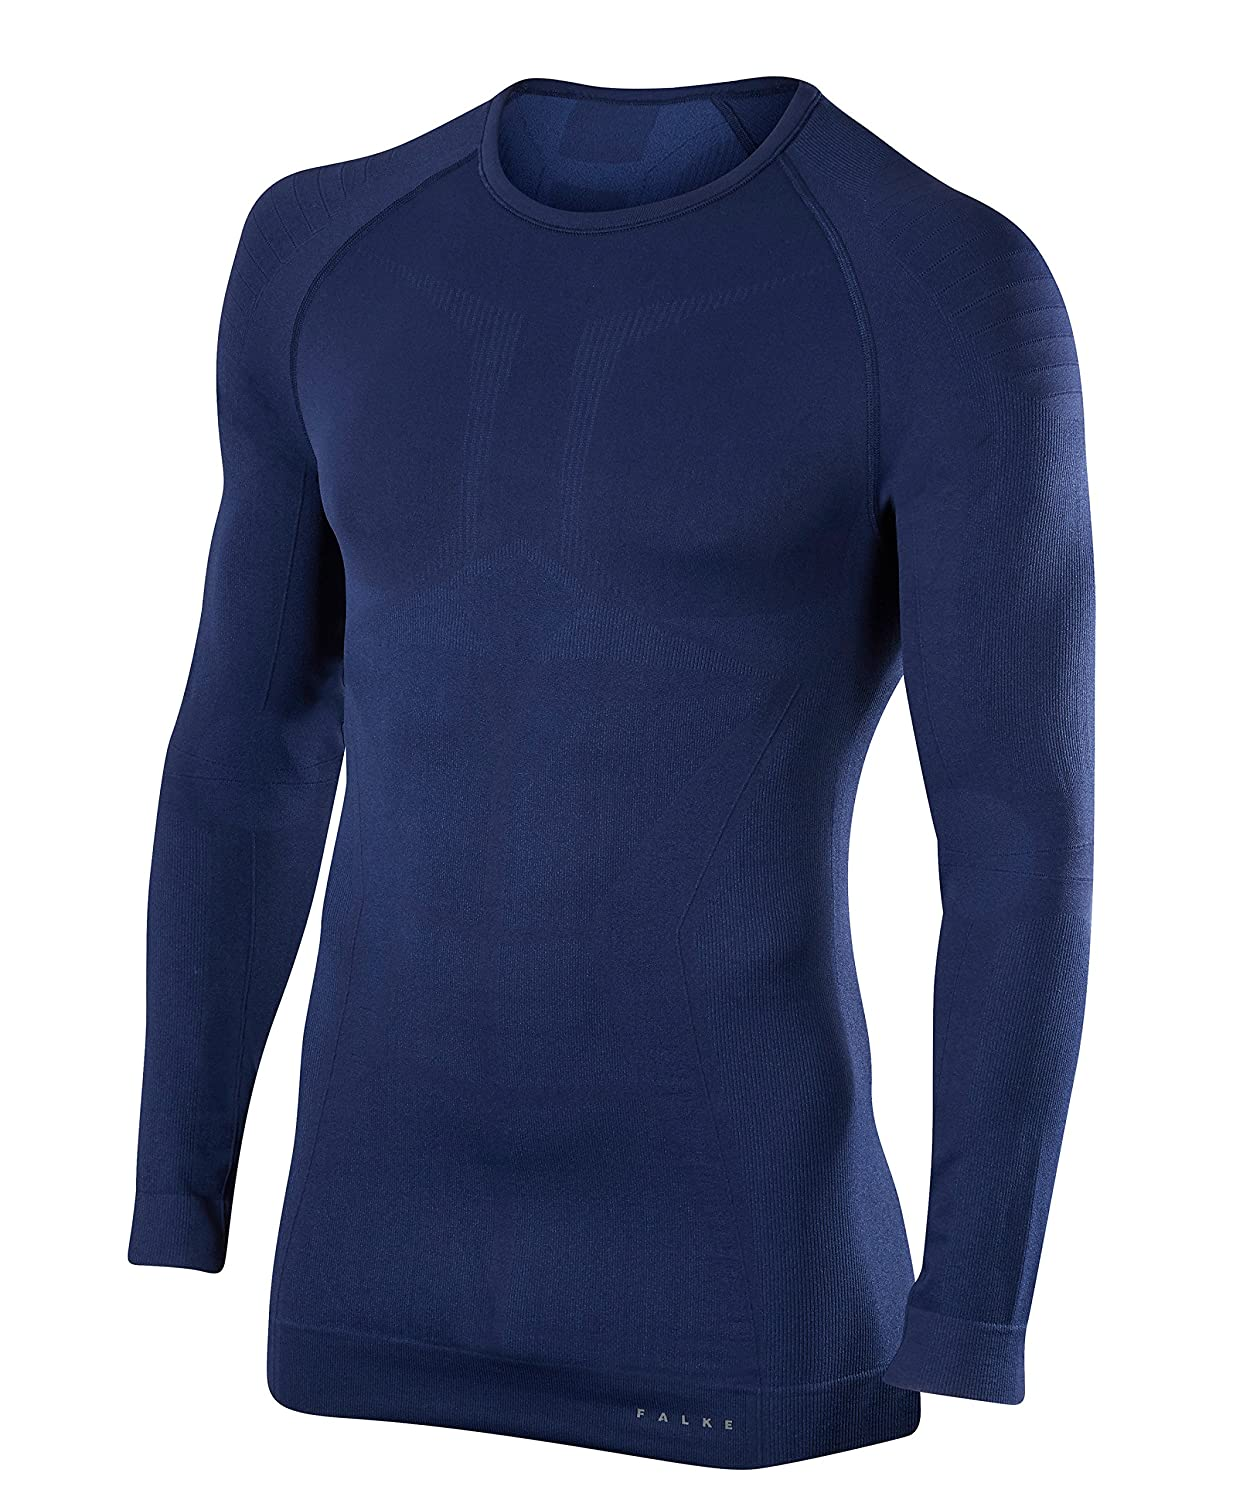 protection in cold to very cold temperatures Sweat wicking FALKE ESS Men Maximum Warm Long Sleeve Close Fit top warm fast drying polyamide mix Sizes S-XXL multiple colours